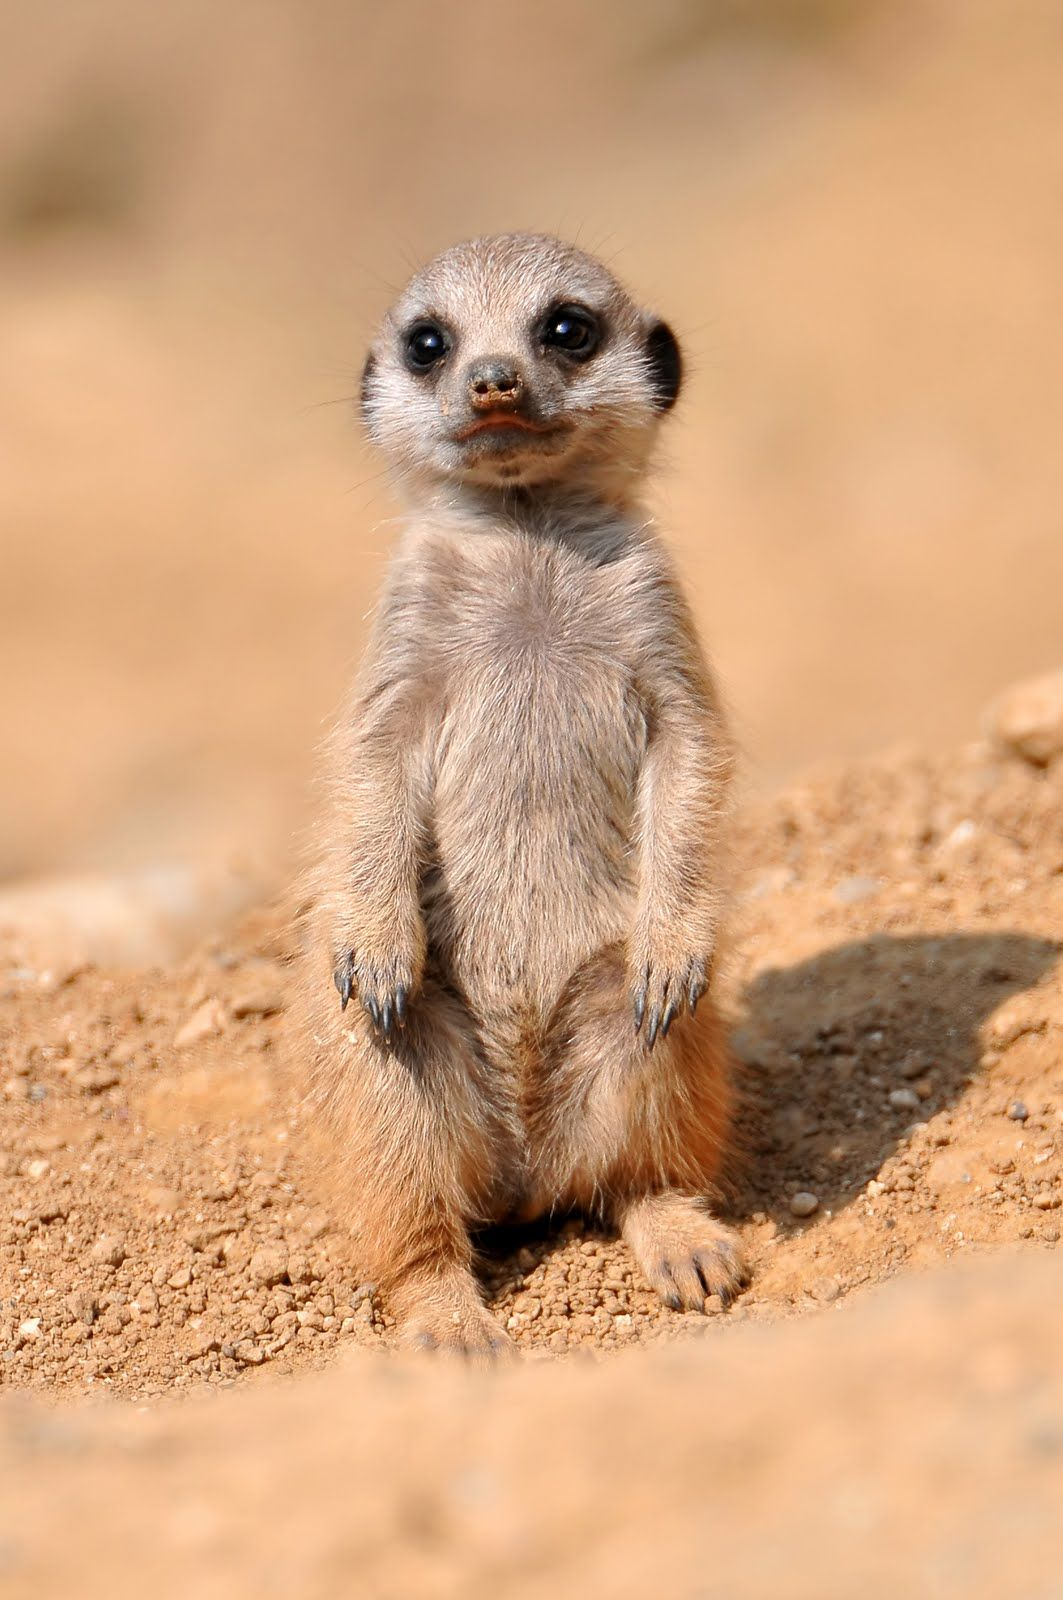 What's Your Animal Personality Type? | Baby meerkat, Cute animals ...